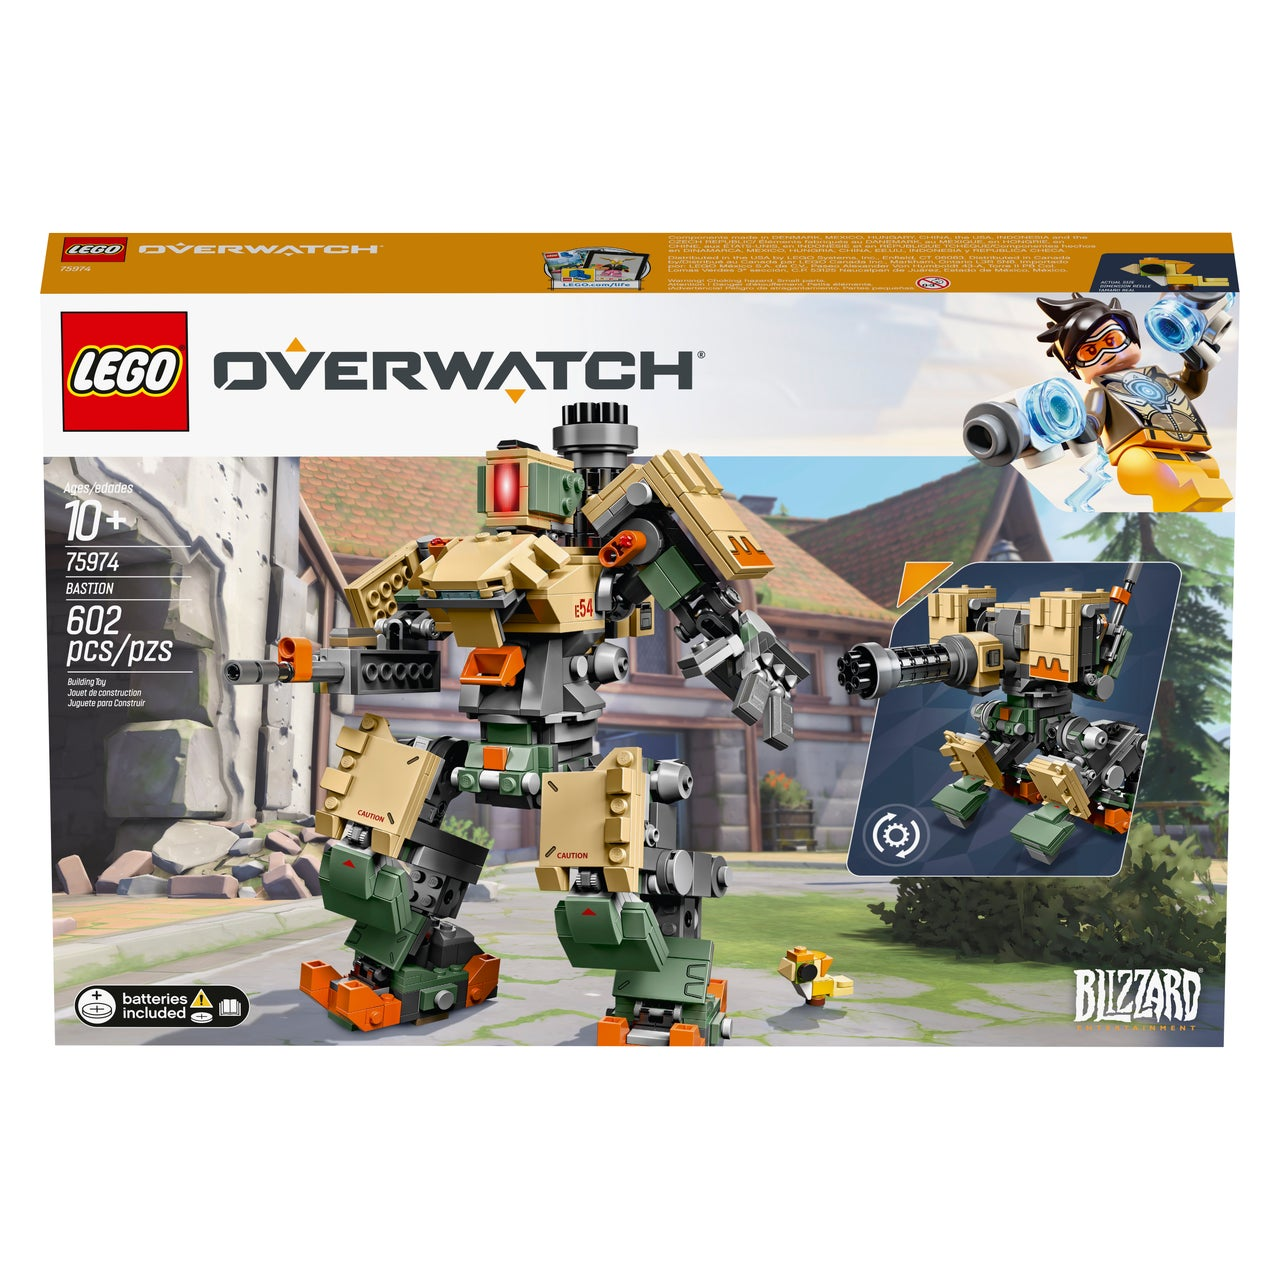 Update LEGO Overwatch Sets Officially Announced IGN